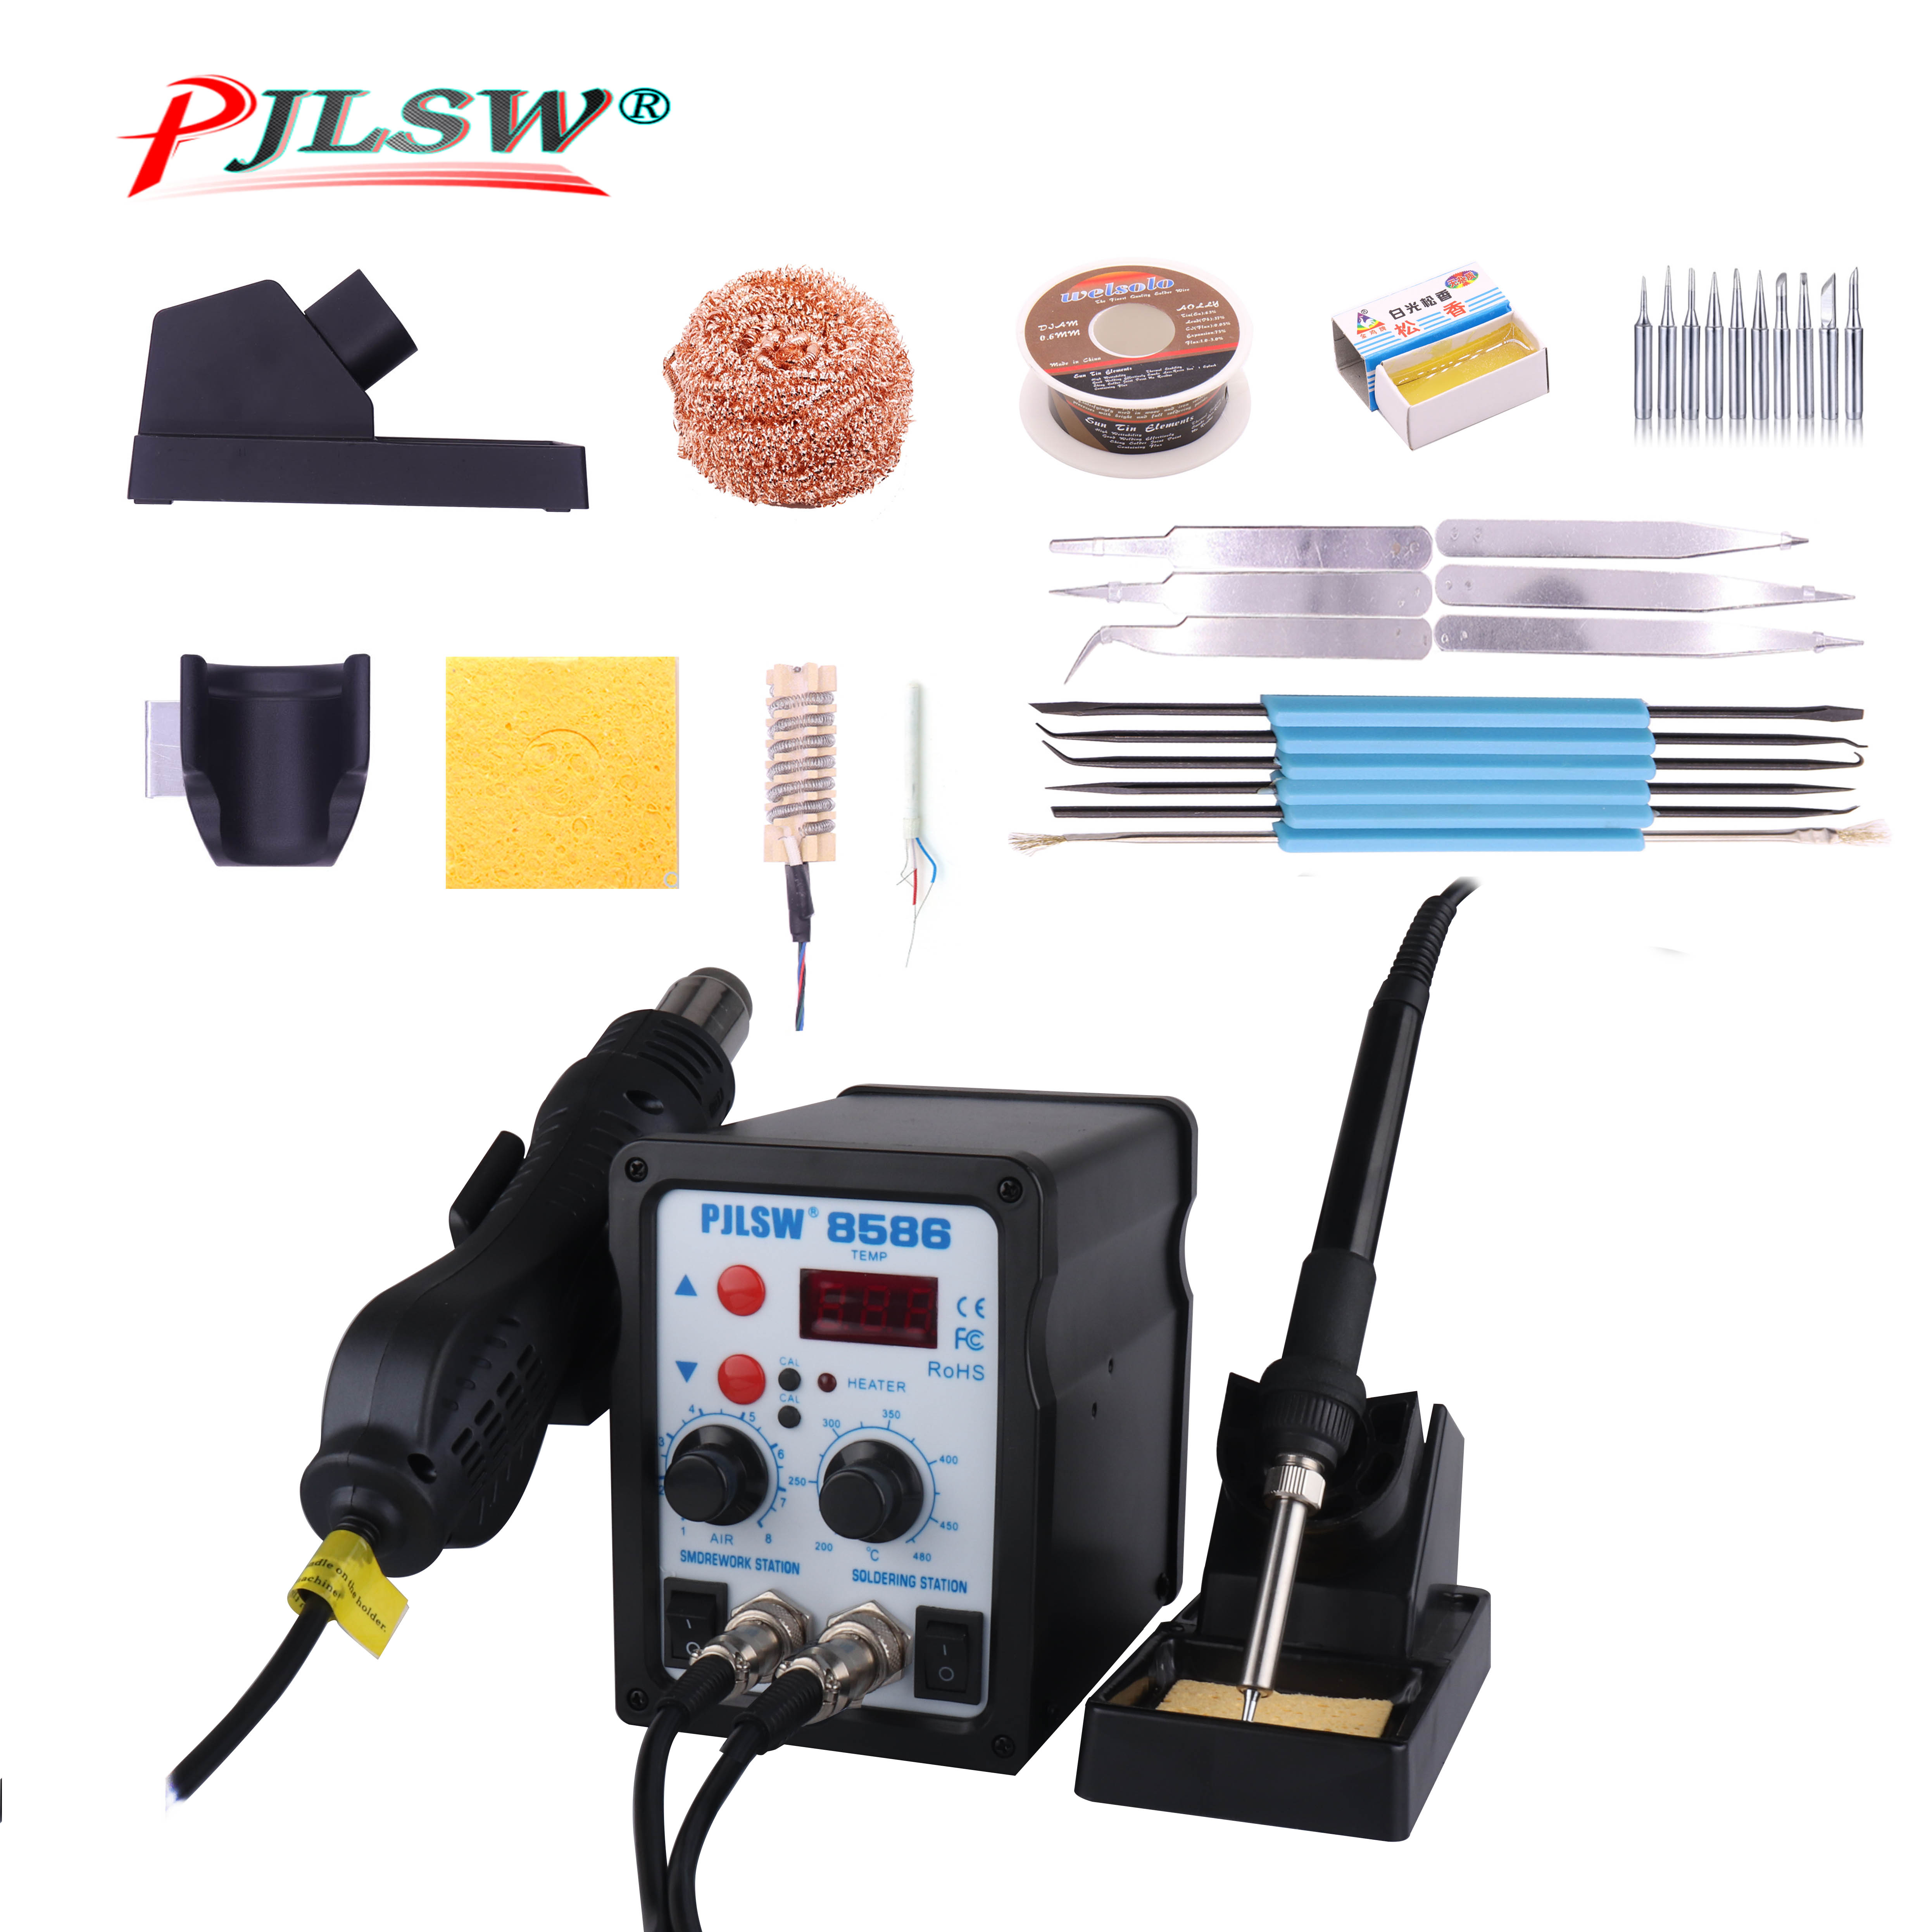 pjlsw-700w-double-digital-display-electric-soldering-irons-hot-air-gun-better-smd-rework-station-upgraded-8586